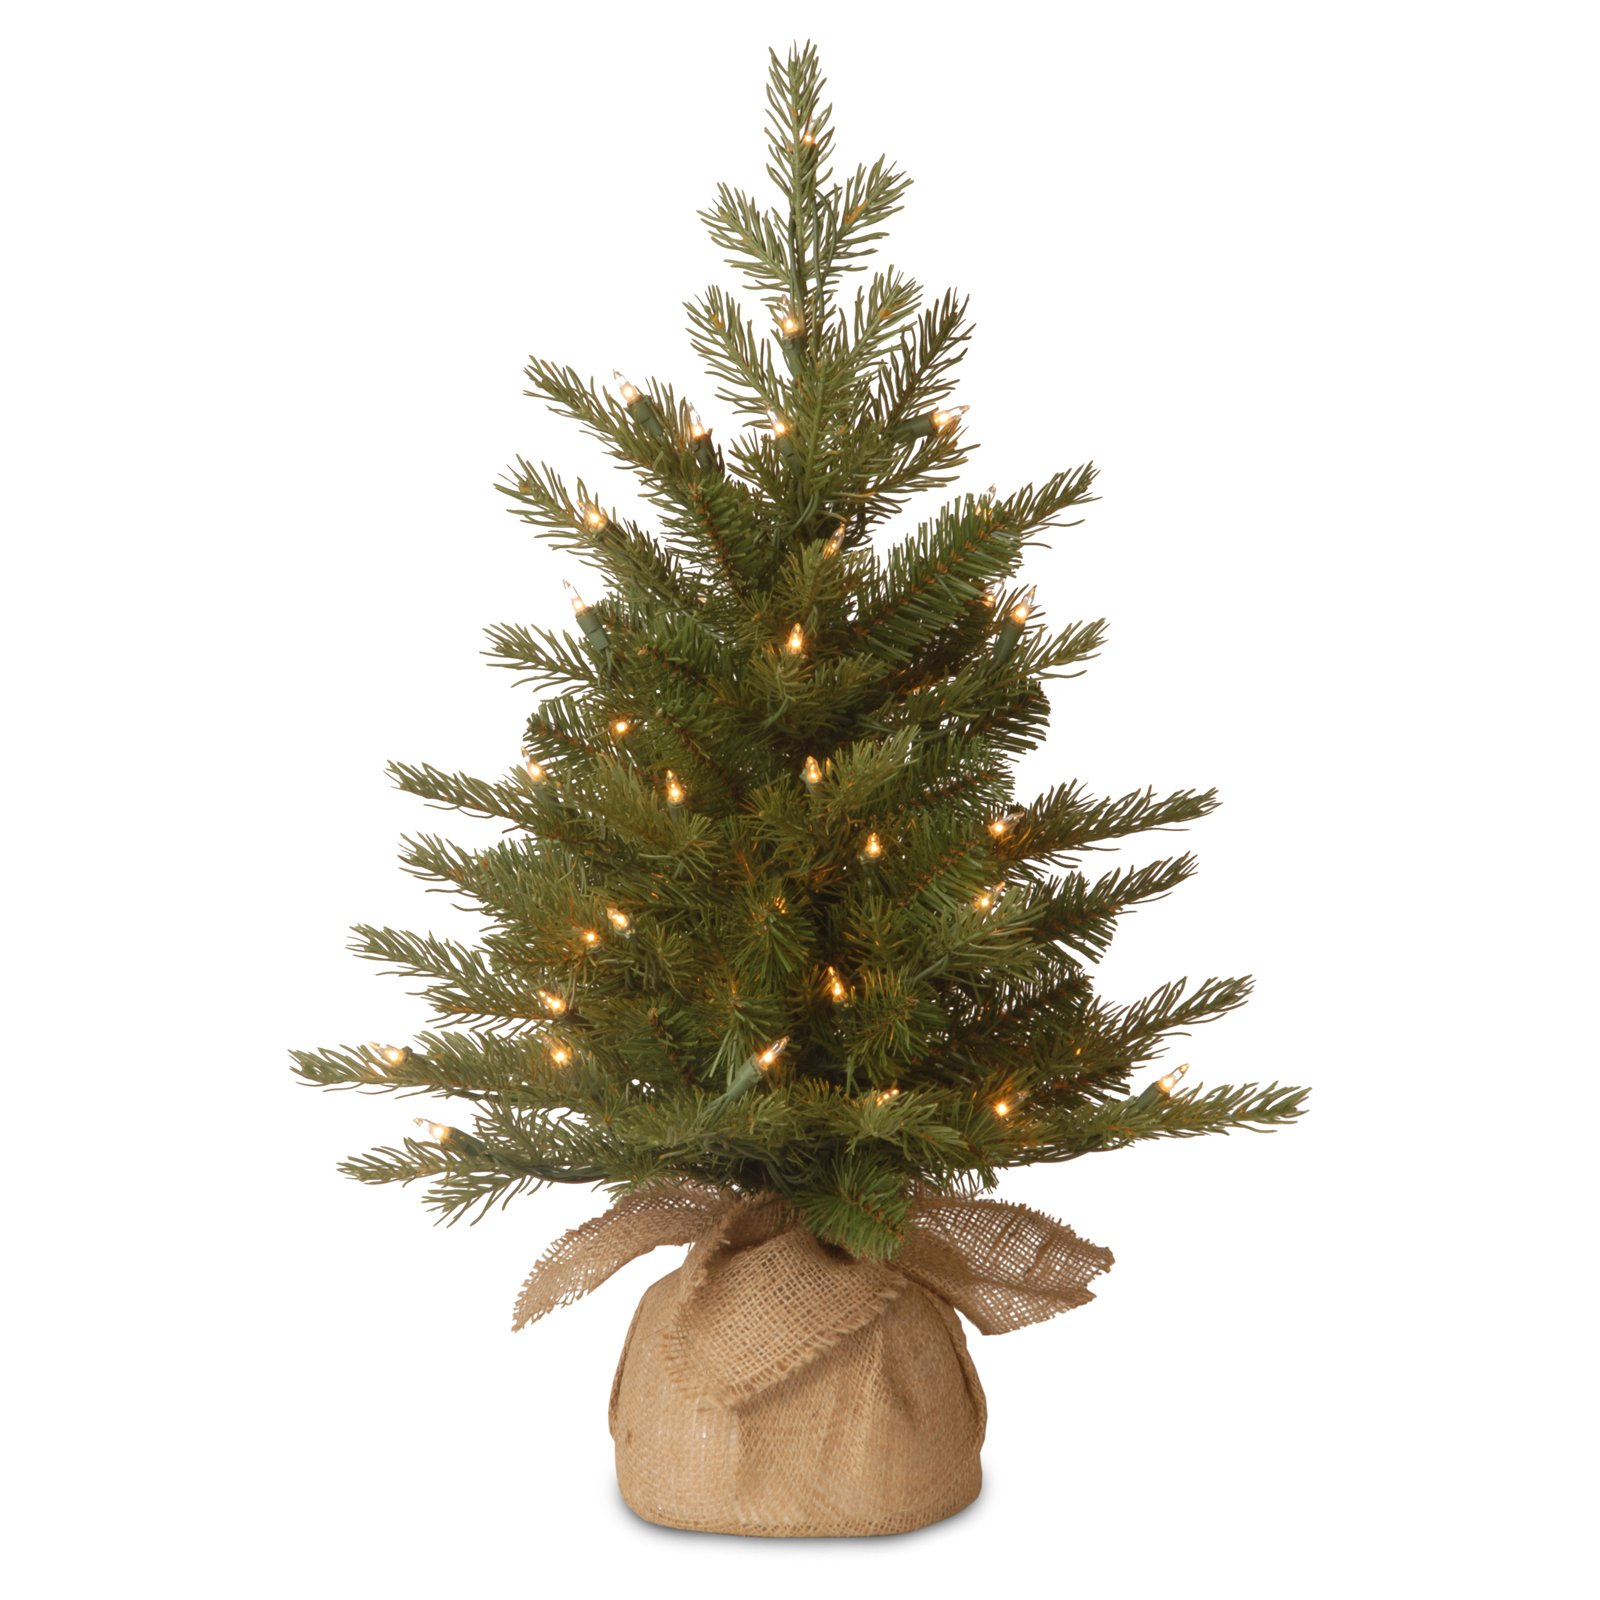 national tree pre lit 3 feel real nordic spruce small artificial christmas tree in burlap with 100 clear lights walmartcom